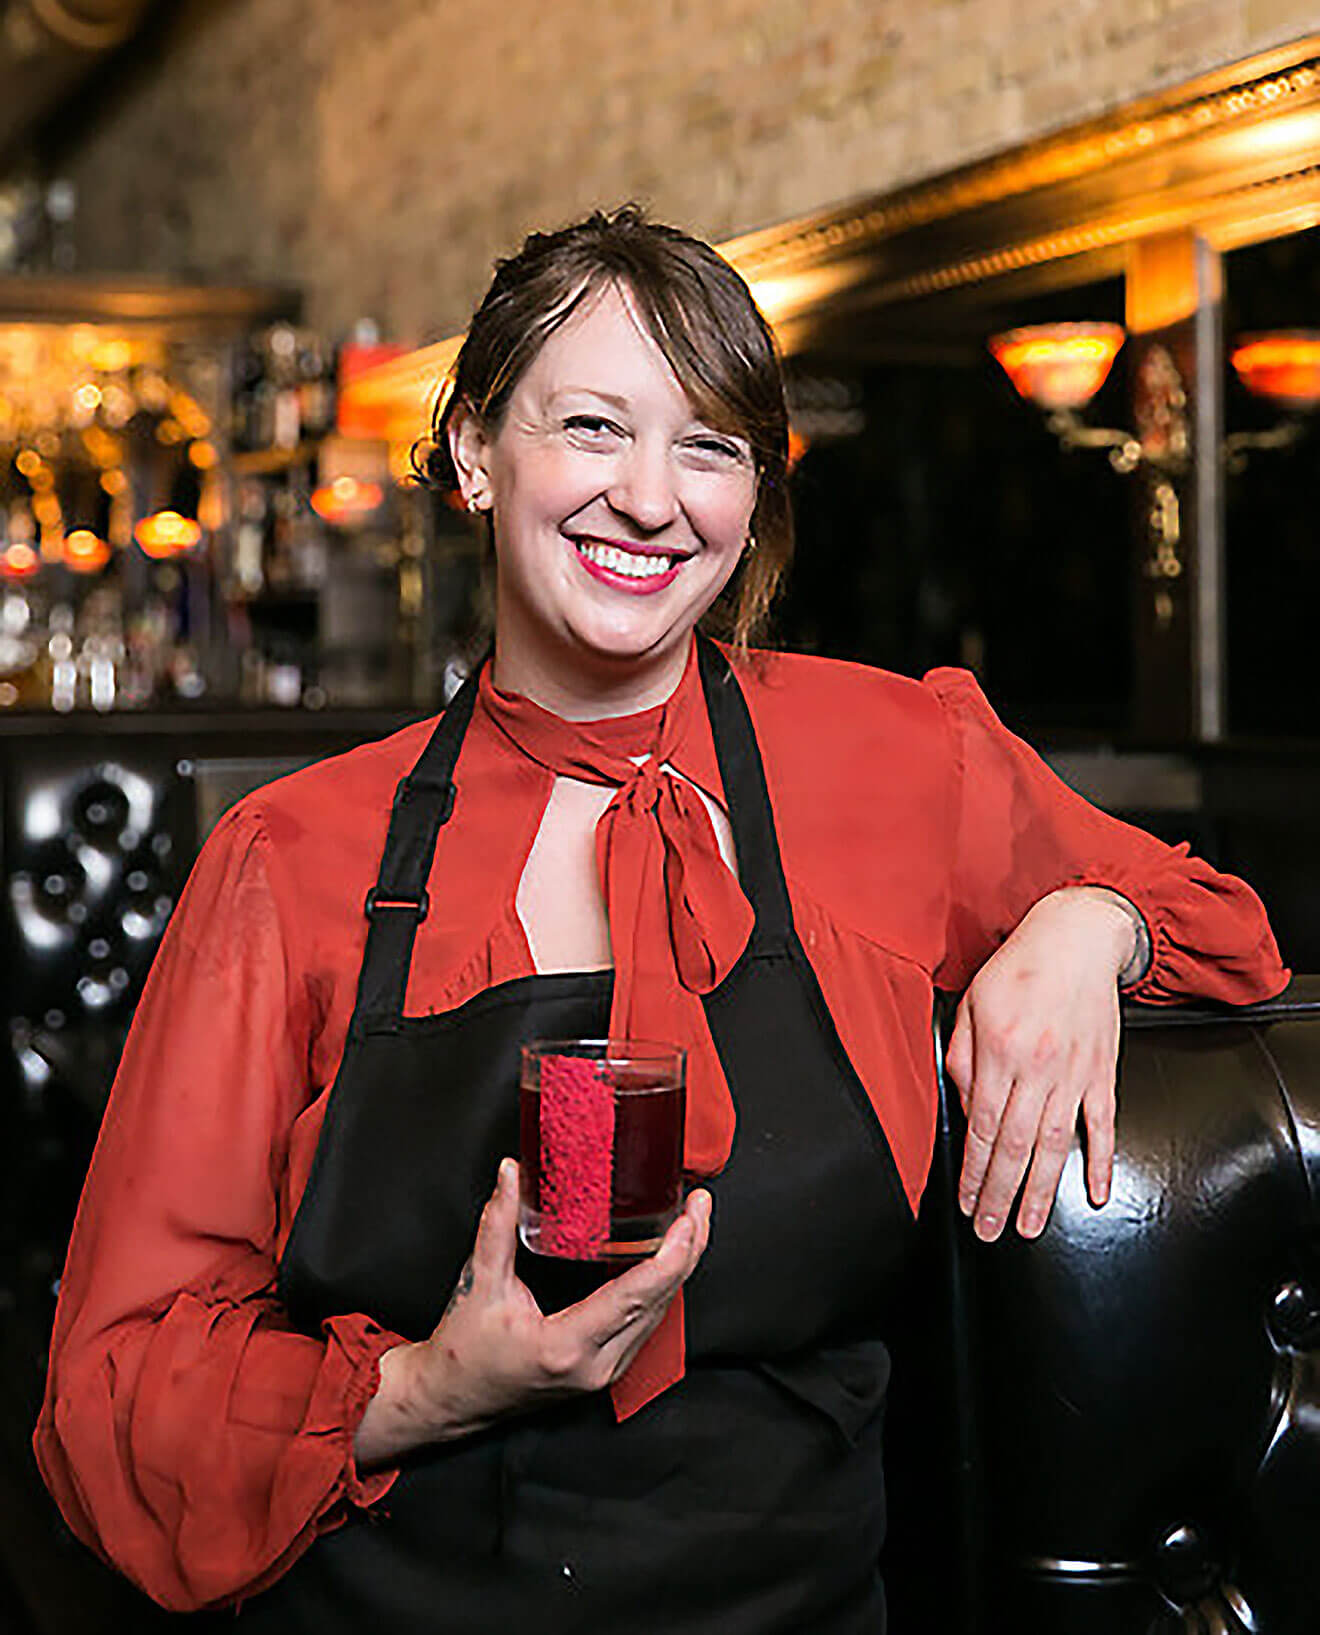 Tacy Rowland, side of the bar, presenting cocktail